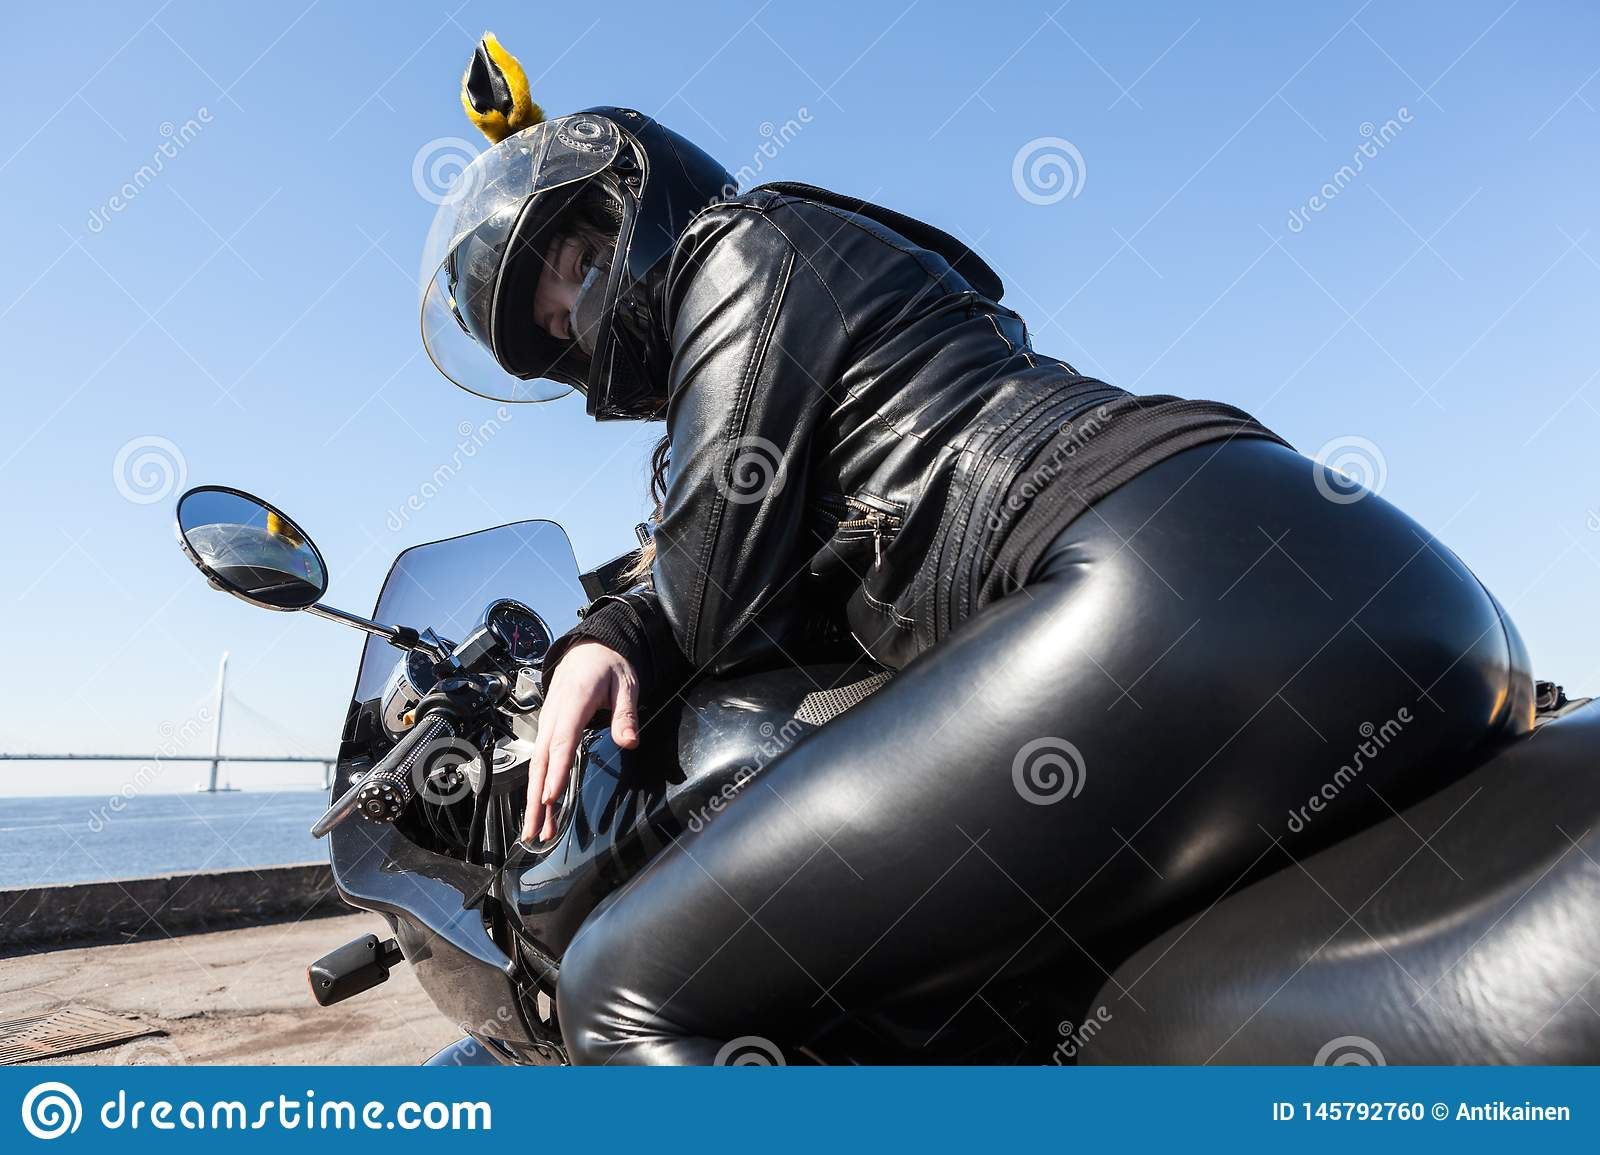 woman motorcyclist in black leather apparel and helmet sitting on bike, rear view, low angle view